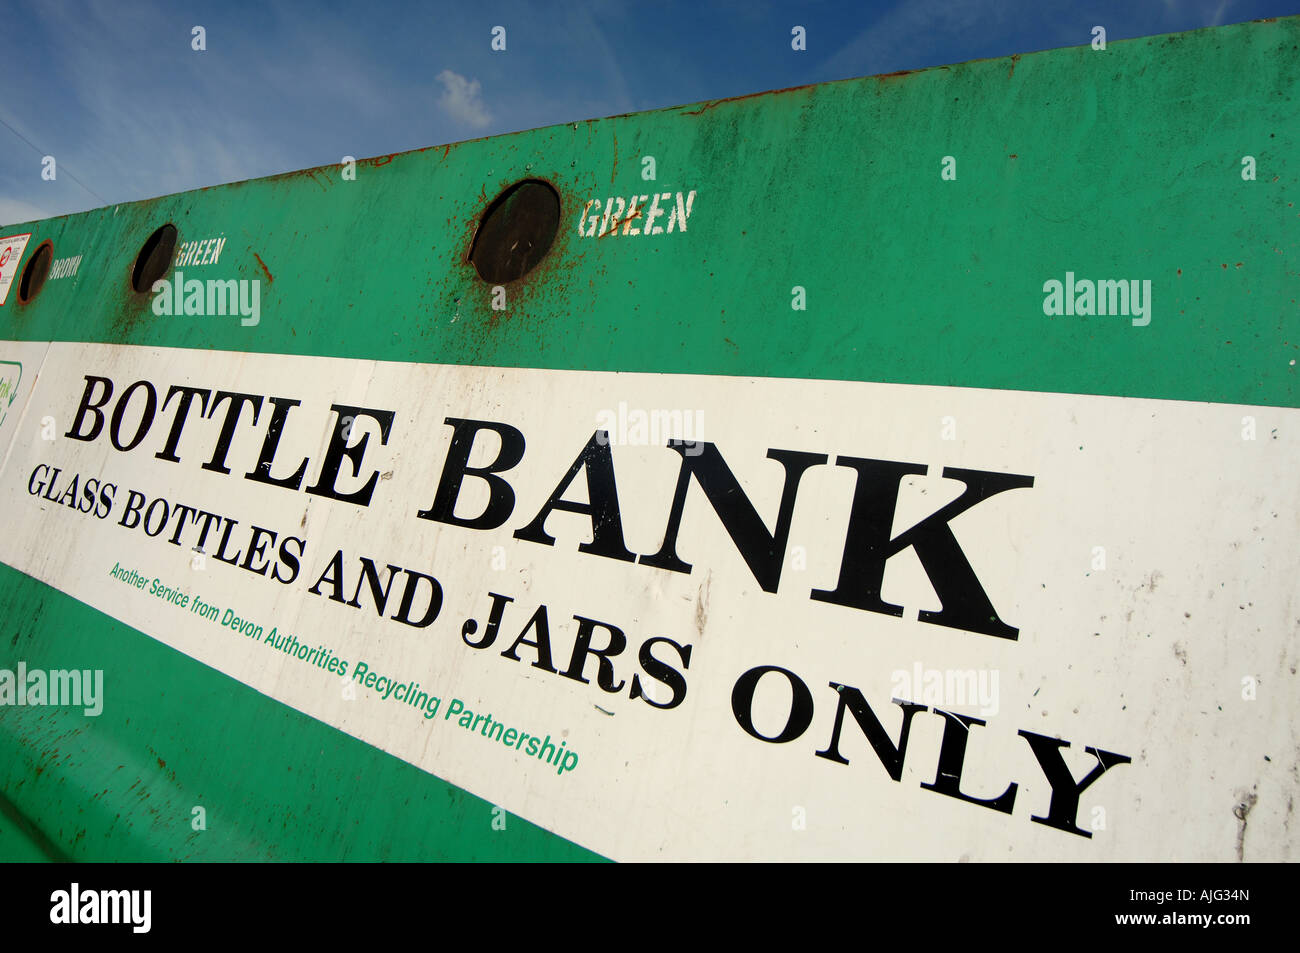 A bottle bank at a recycling centre in Exeter, Devon, UK. - Stock Image